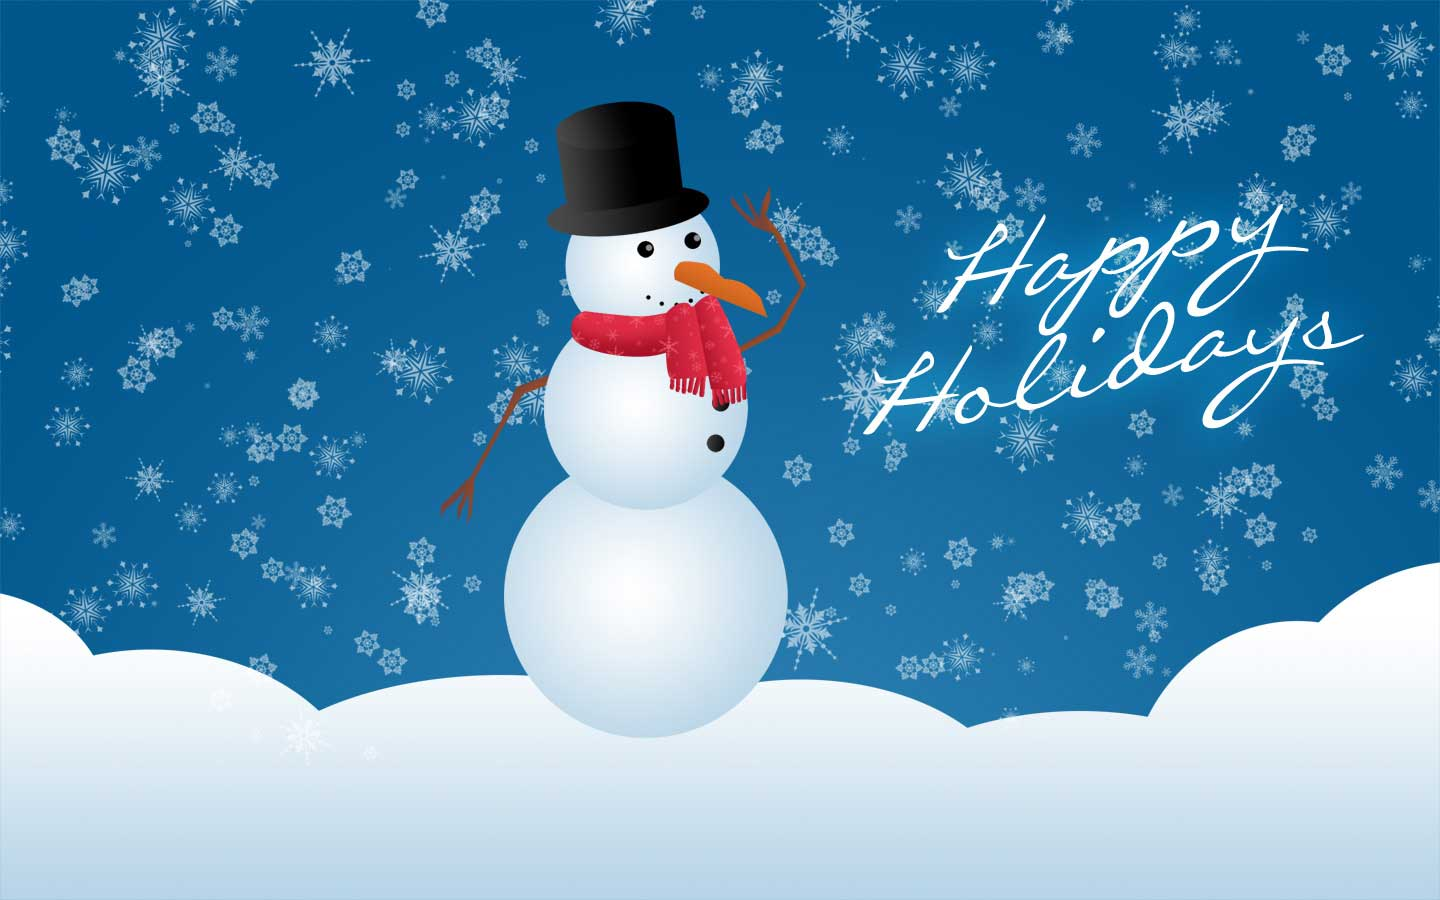 happy holidays backgrounds wallpaper 1440x900